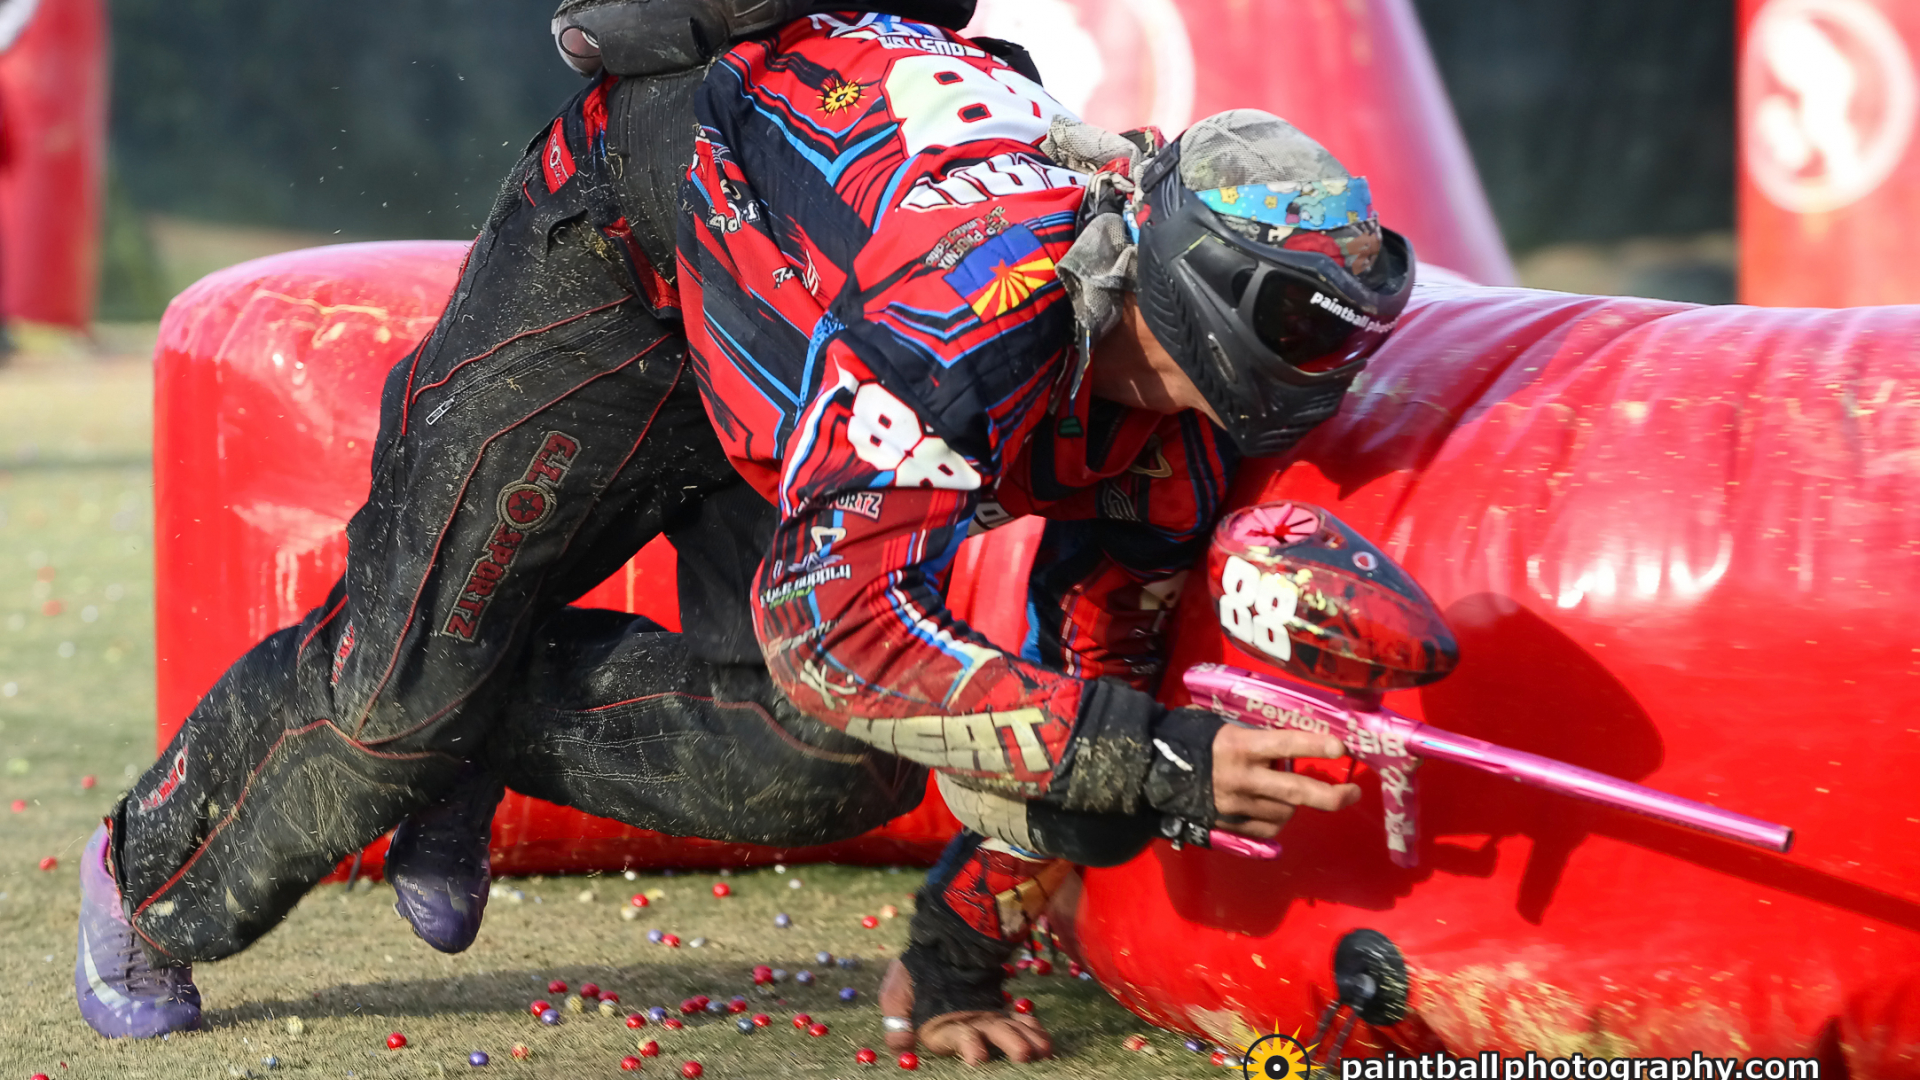 Free Download Paintball Wallpaper Dynasty Dynasty Did Not Play Well And 2165x1443 For Your Desktop Mobile Tablet Explore 50 Dynasty Paintball Wallpaper Dynasty Paintball Wallpaper Paintball Wallpaper Paintball Wallpapers